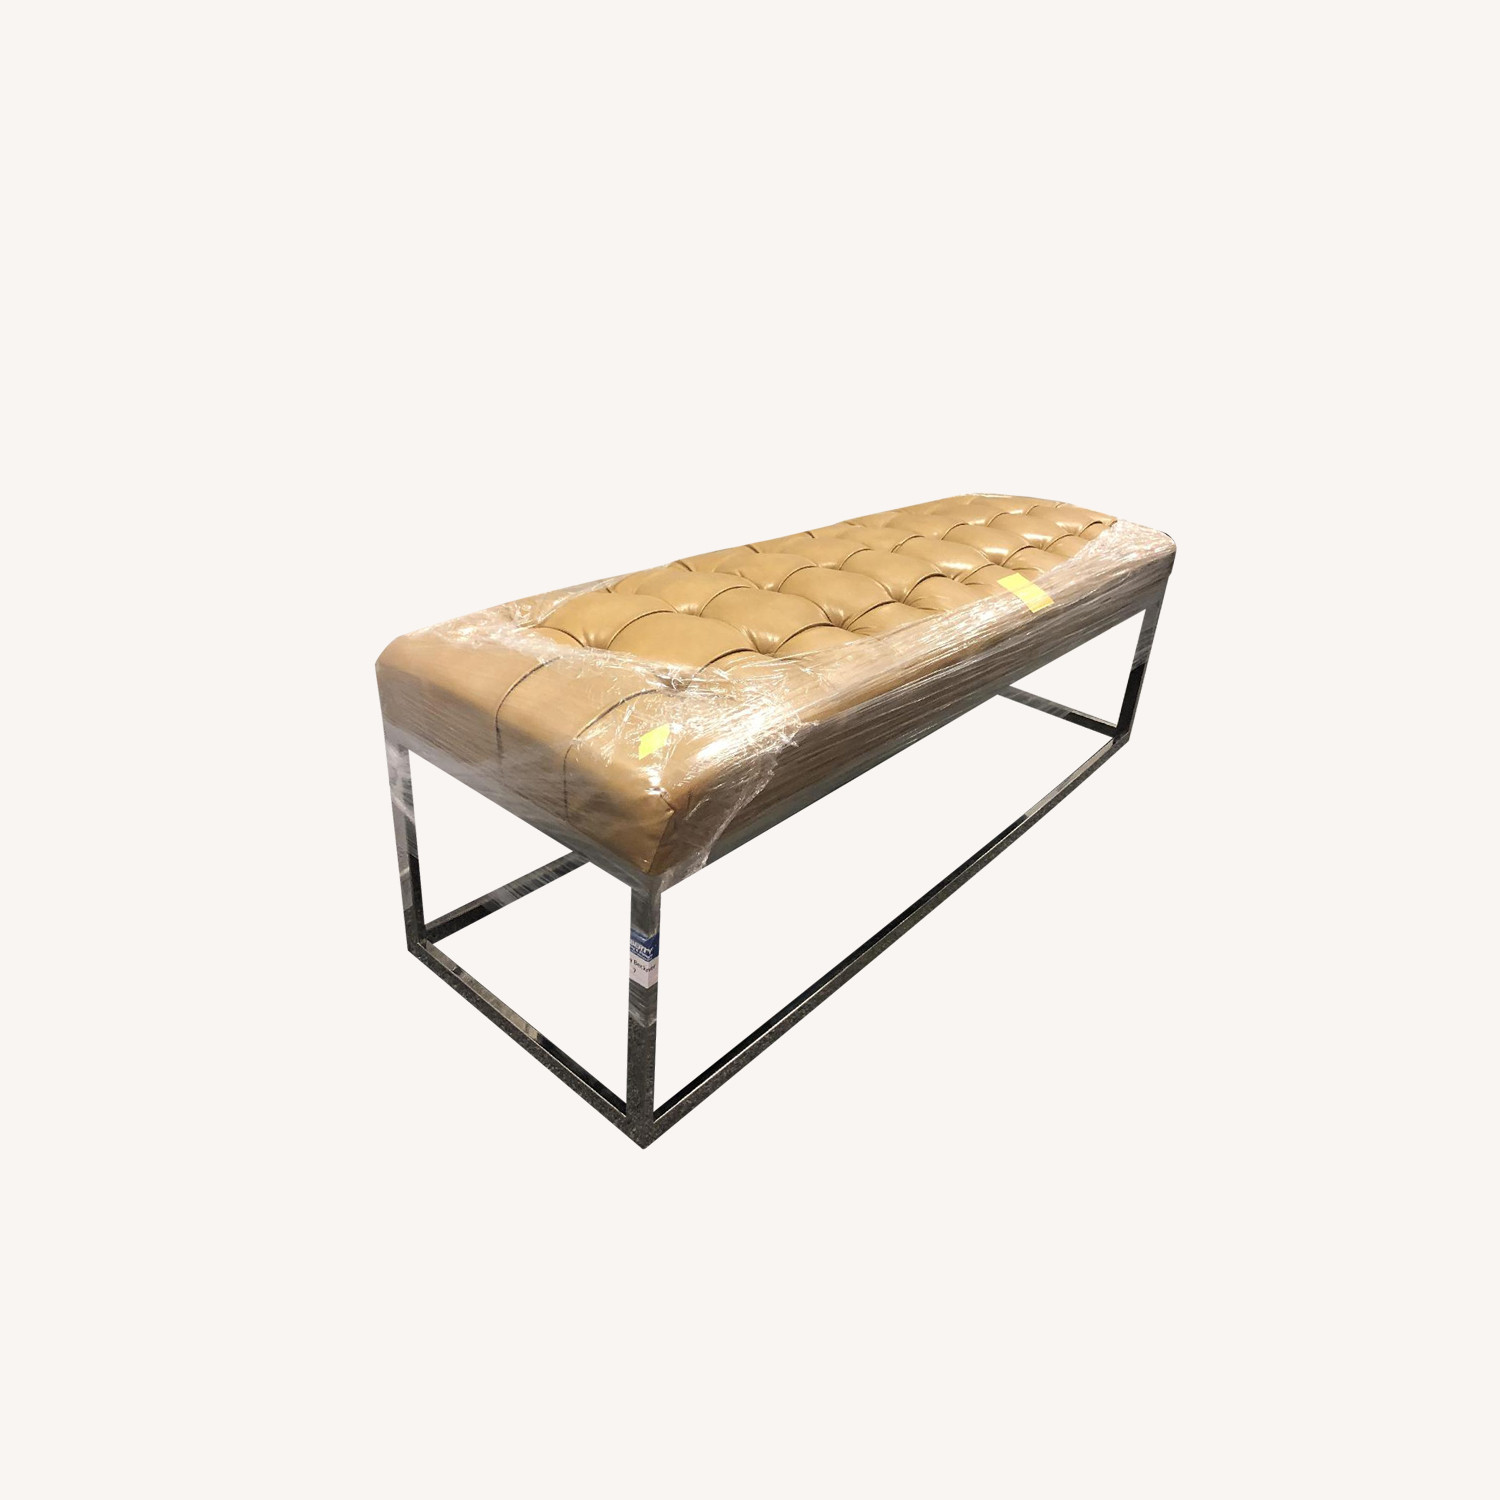 Tufted Faux Leather Bench